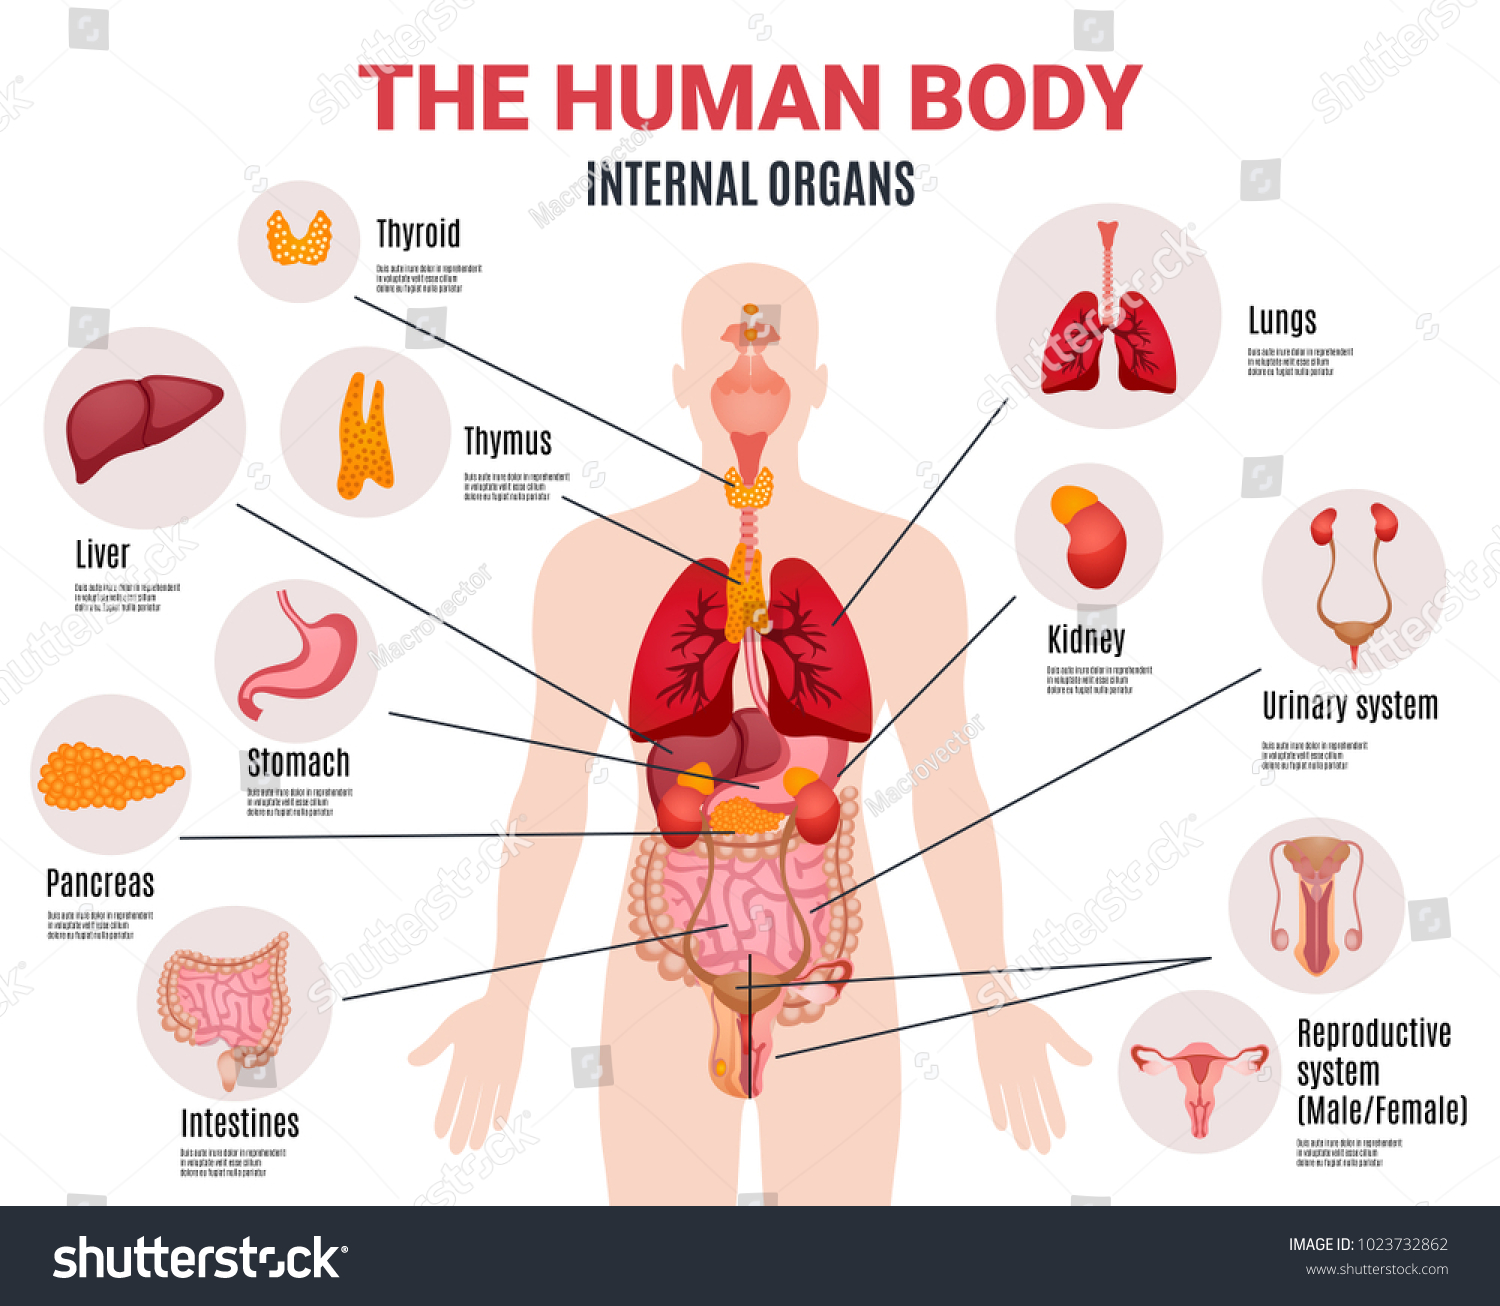 Human Body Internal Organs Schema Flat Stock Vector 1023732862 ...